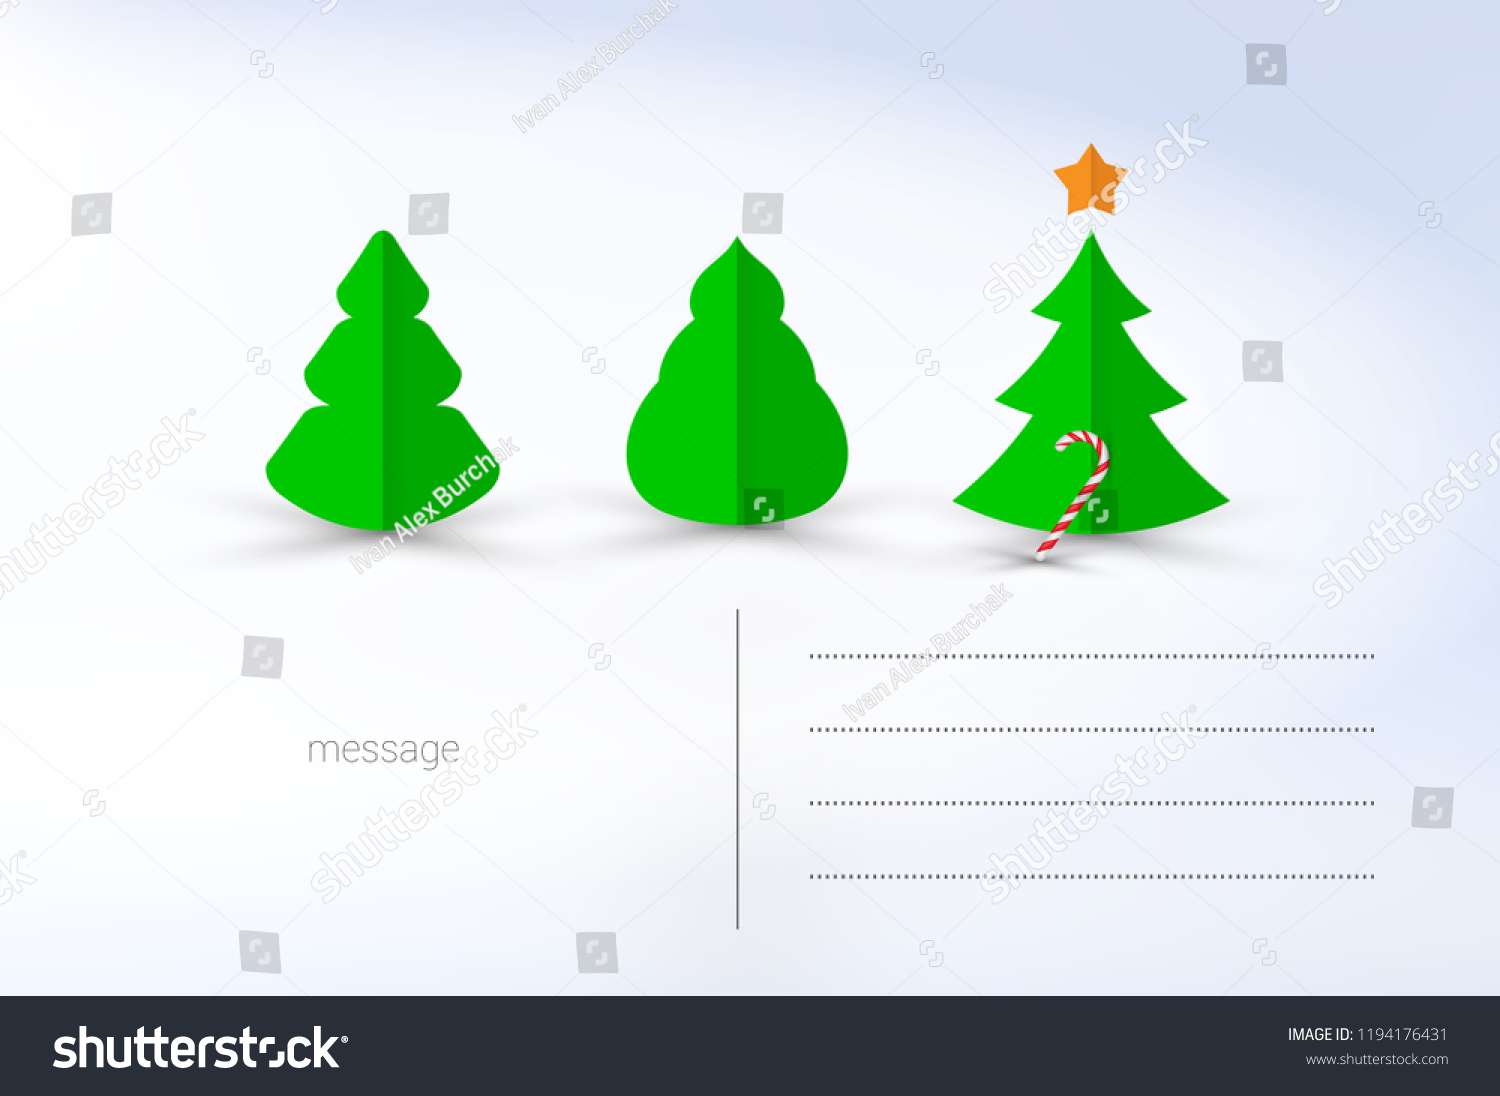 vector christmas greeting card template merry christmas and happy new year design elements resource